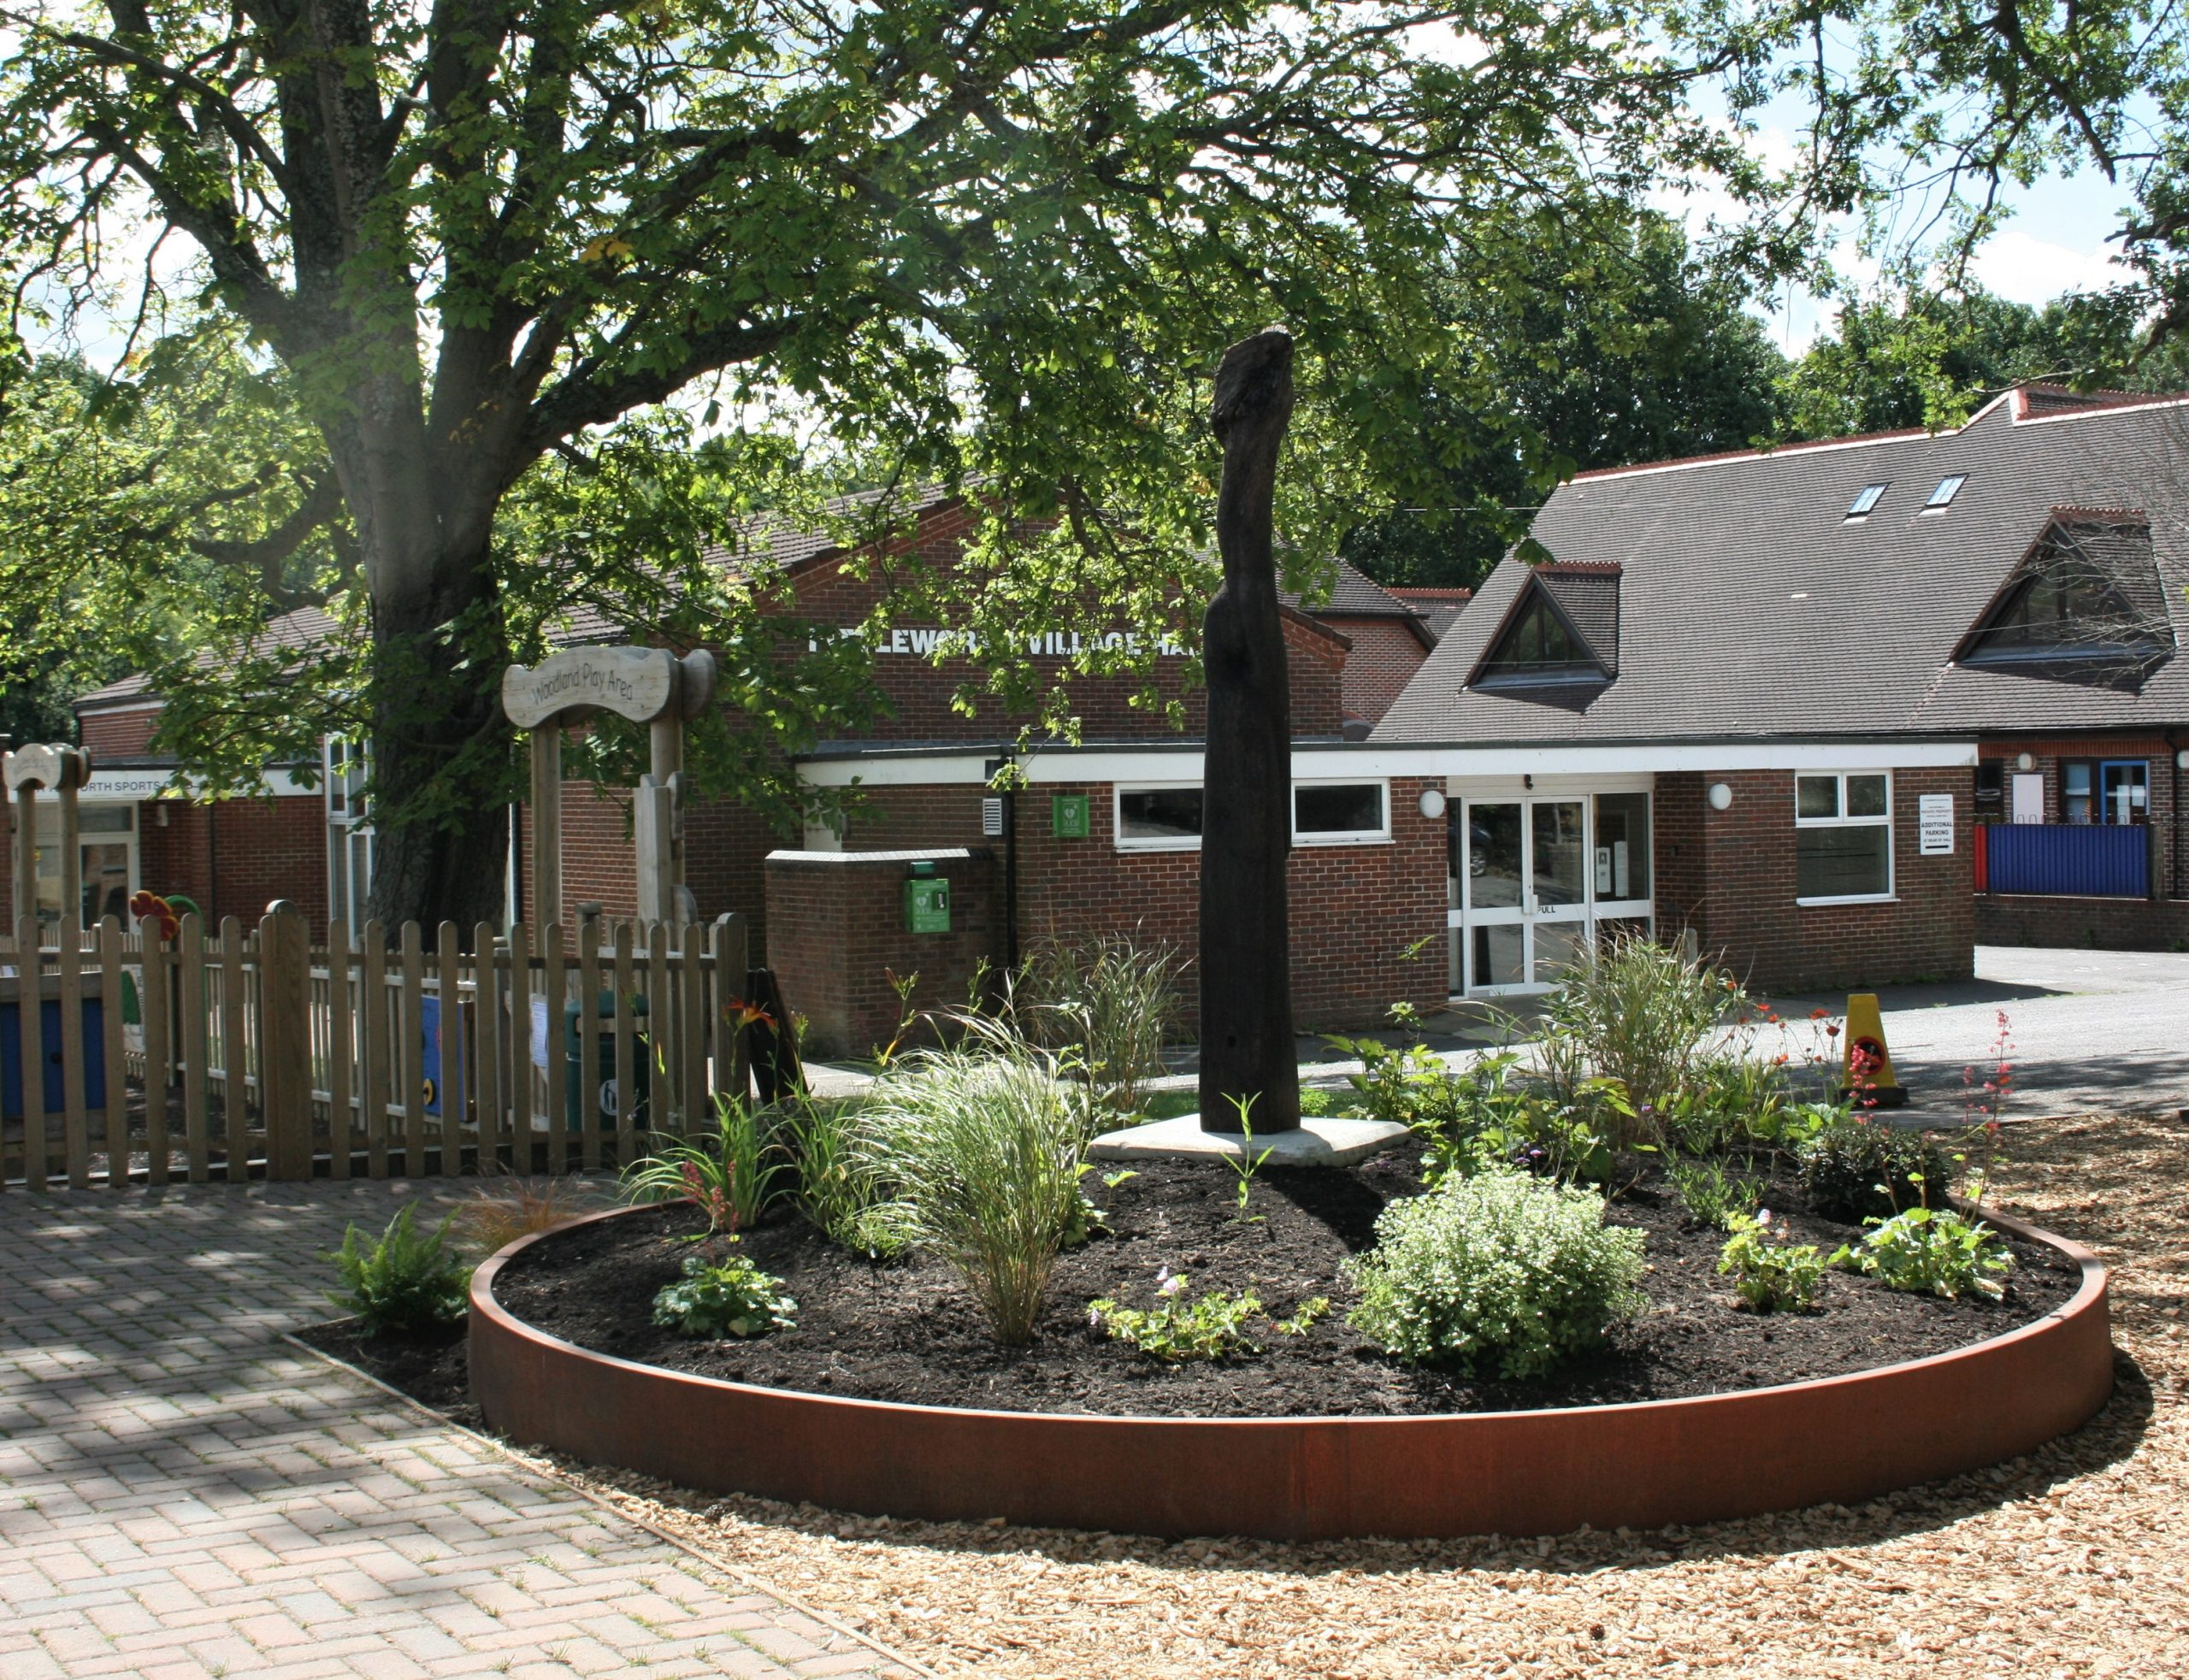 A view of Fittleworth Stores new garden